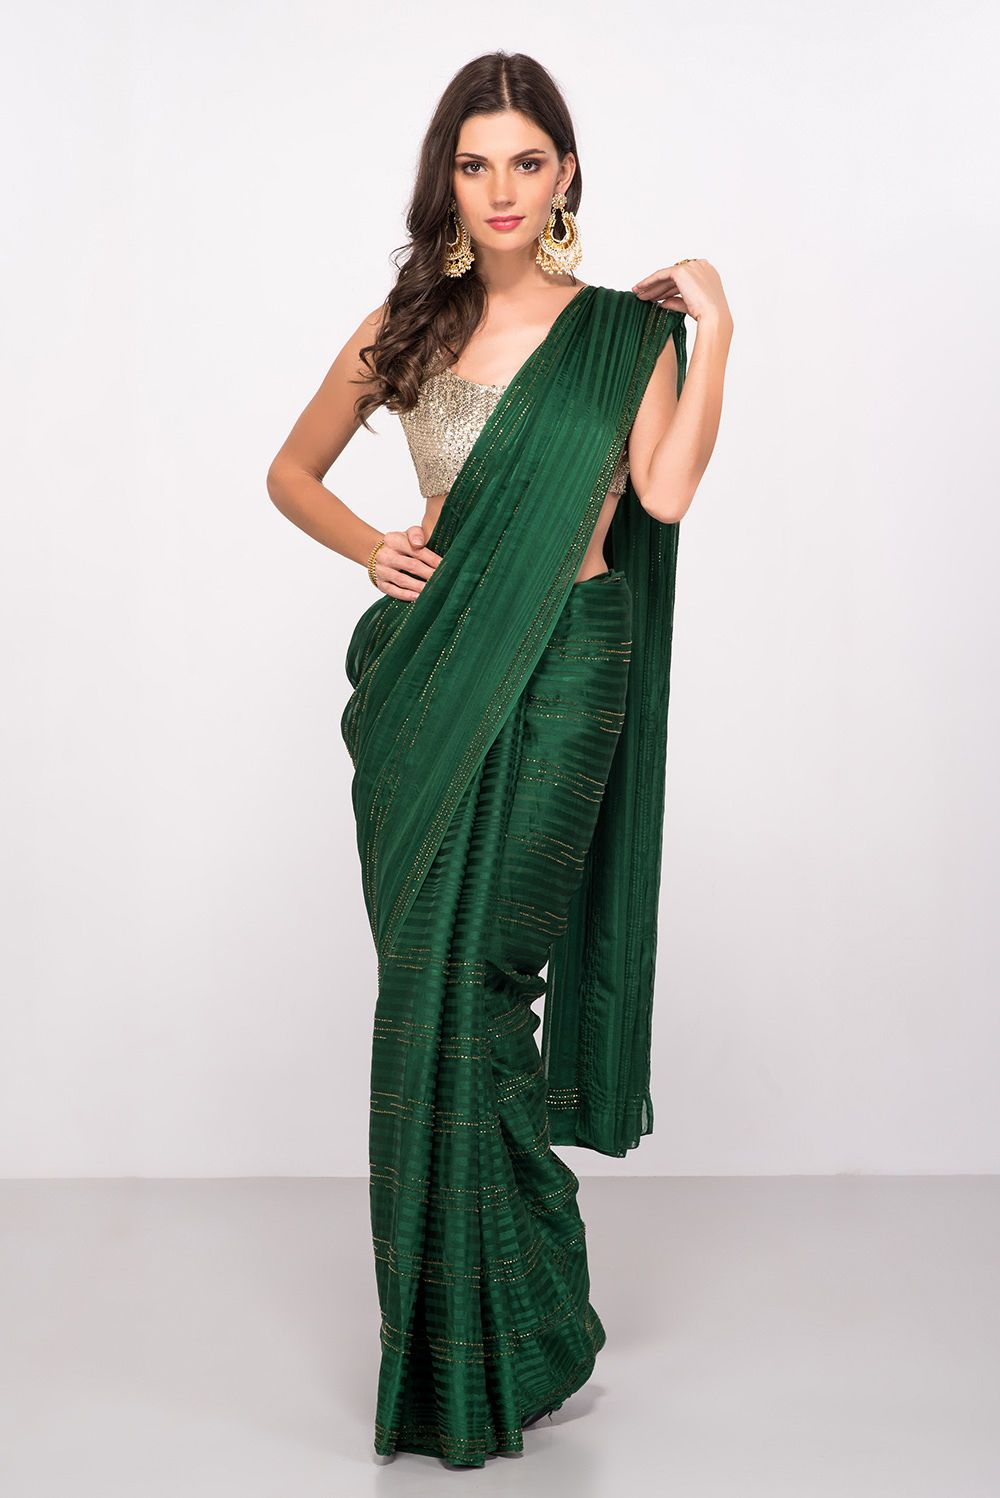 194da94506b019 India s largest fashion rental service